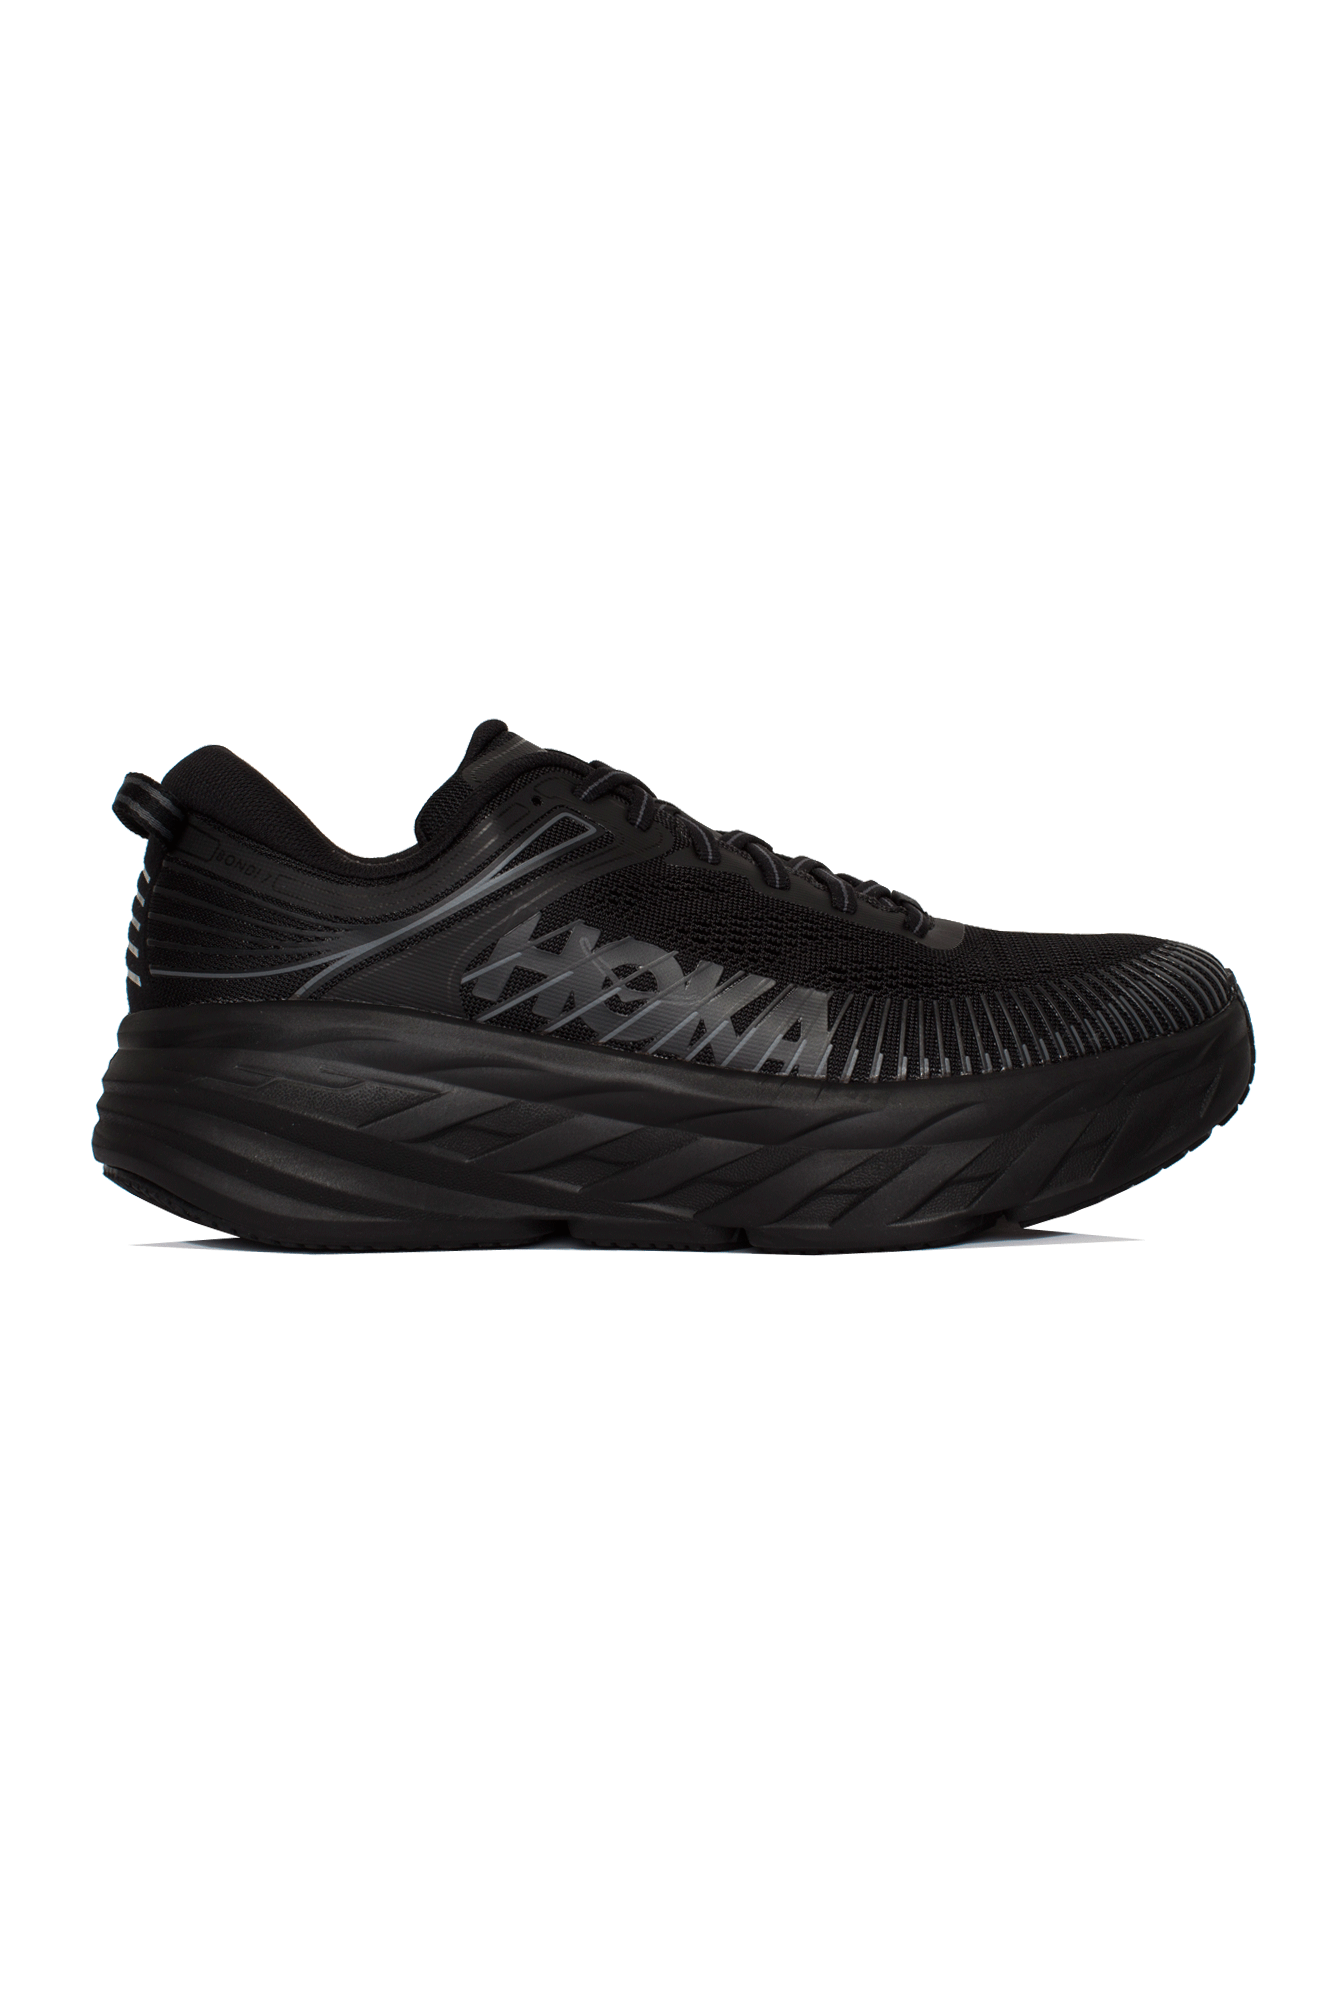 Hoka One One Sneakers Bondi 7 Black HK.1110518#000#BBLC#7 - One Block Down